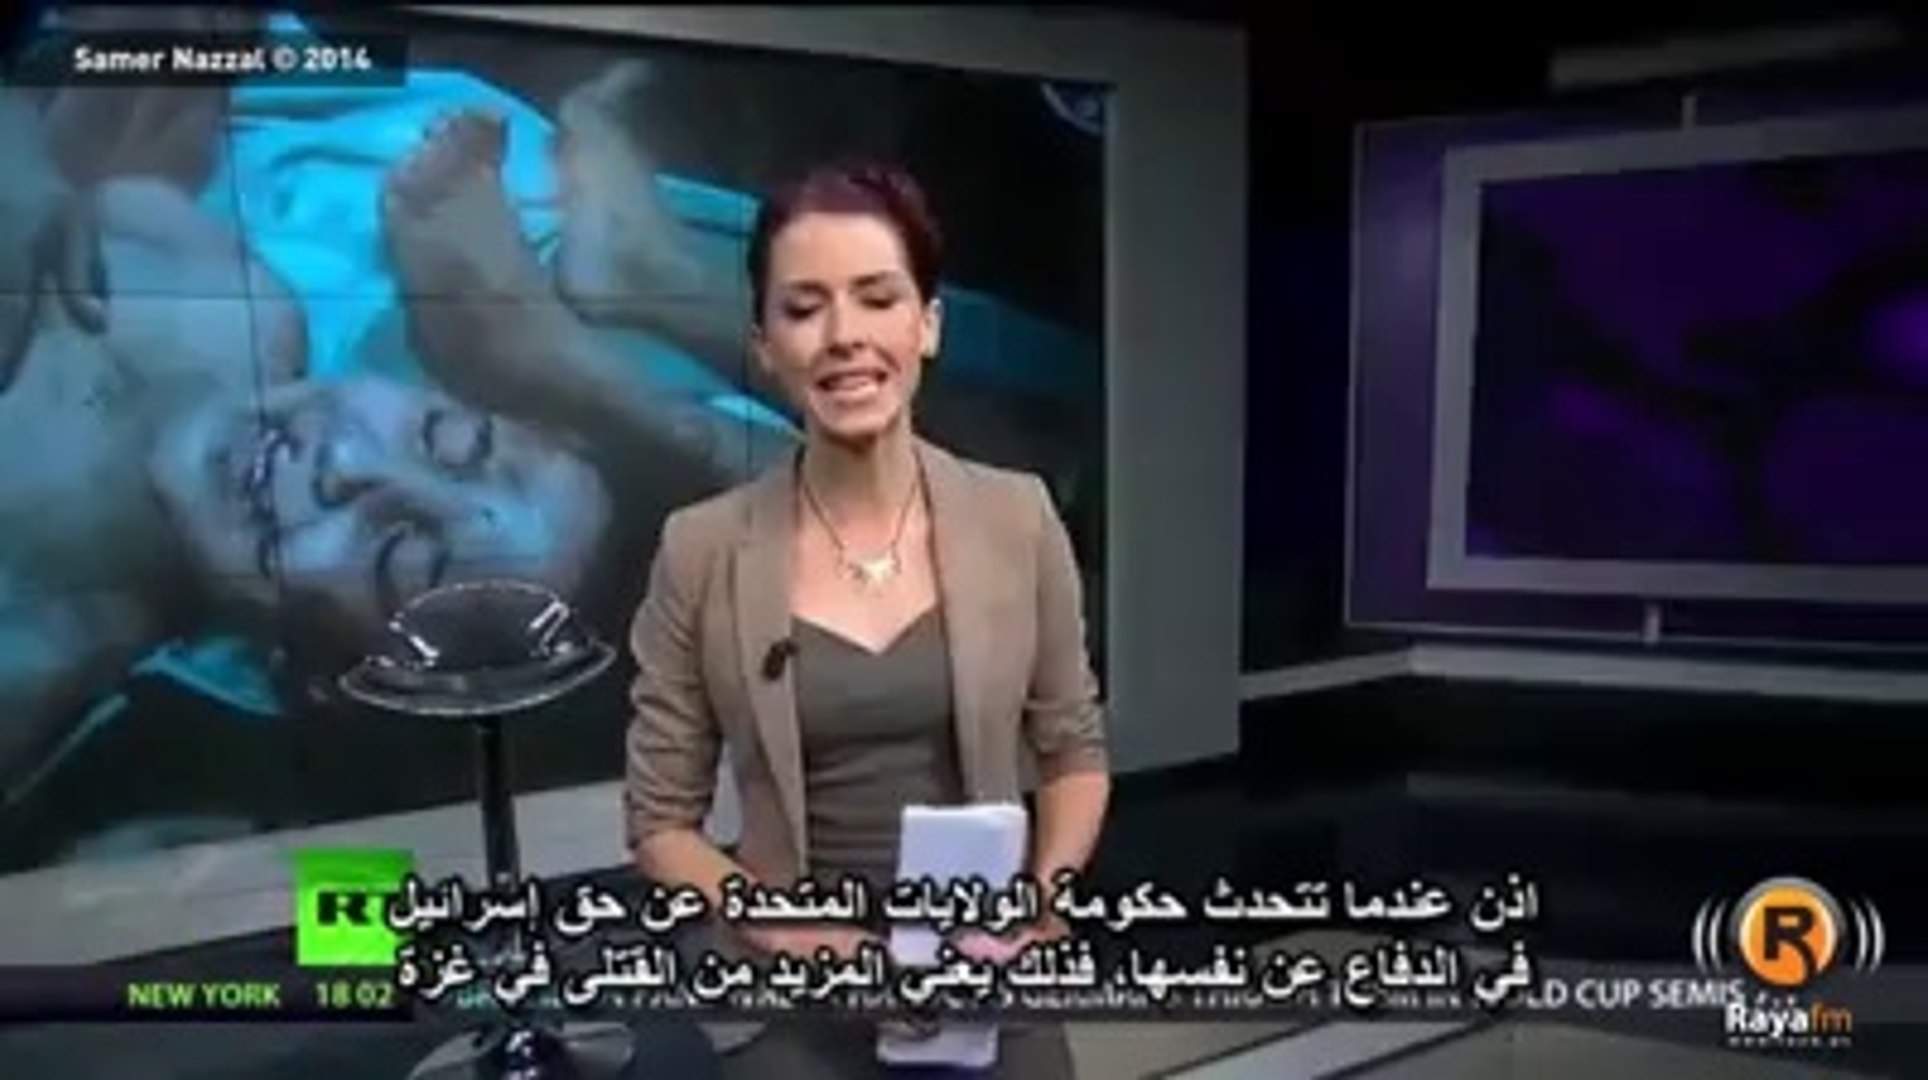 The brave newscaster showing reality of America and Israel